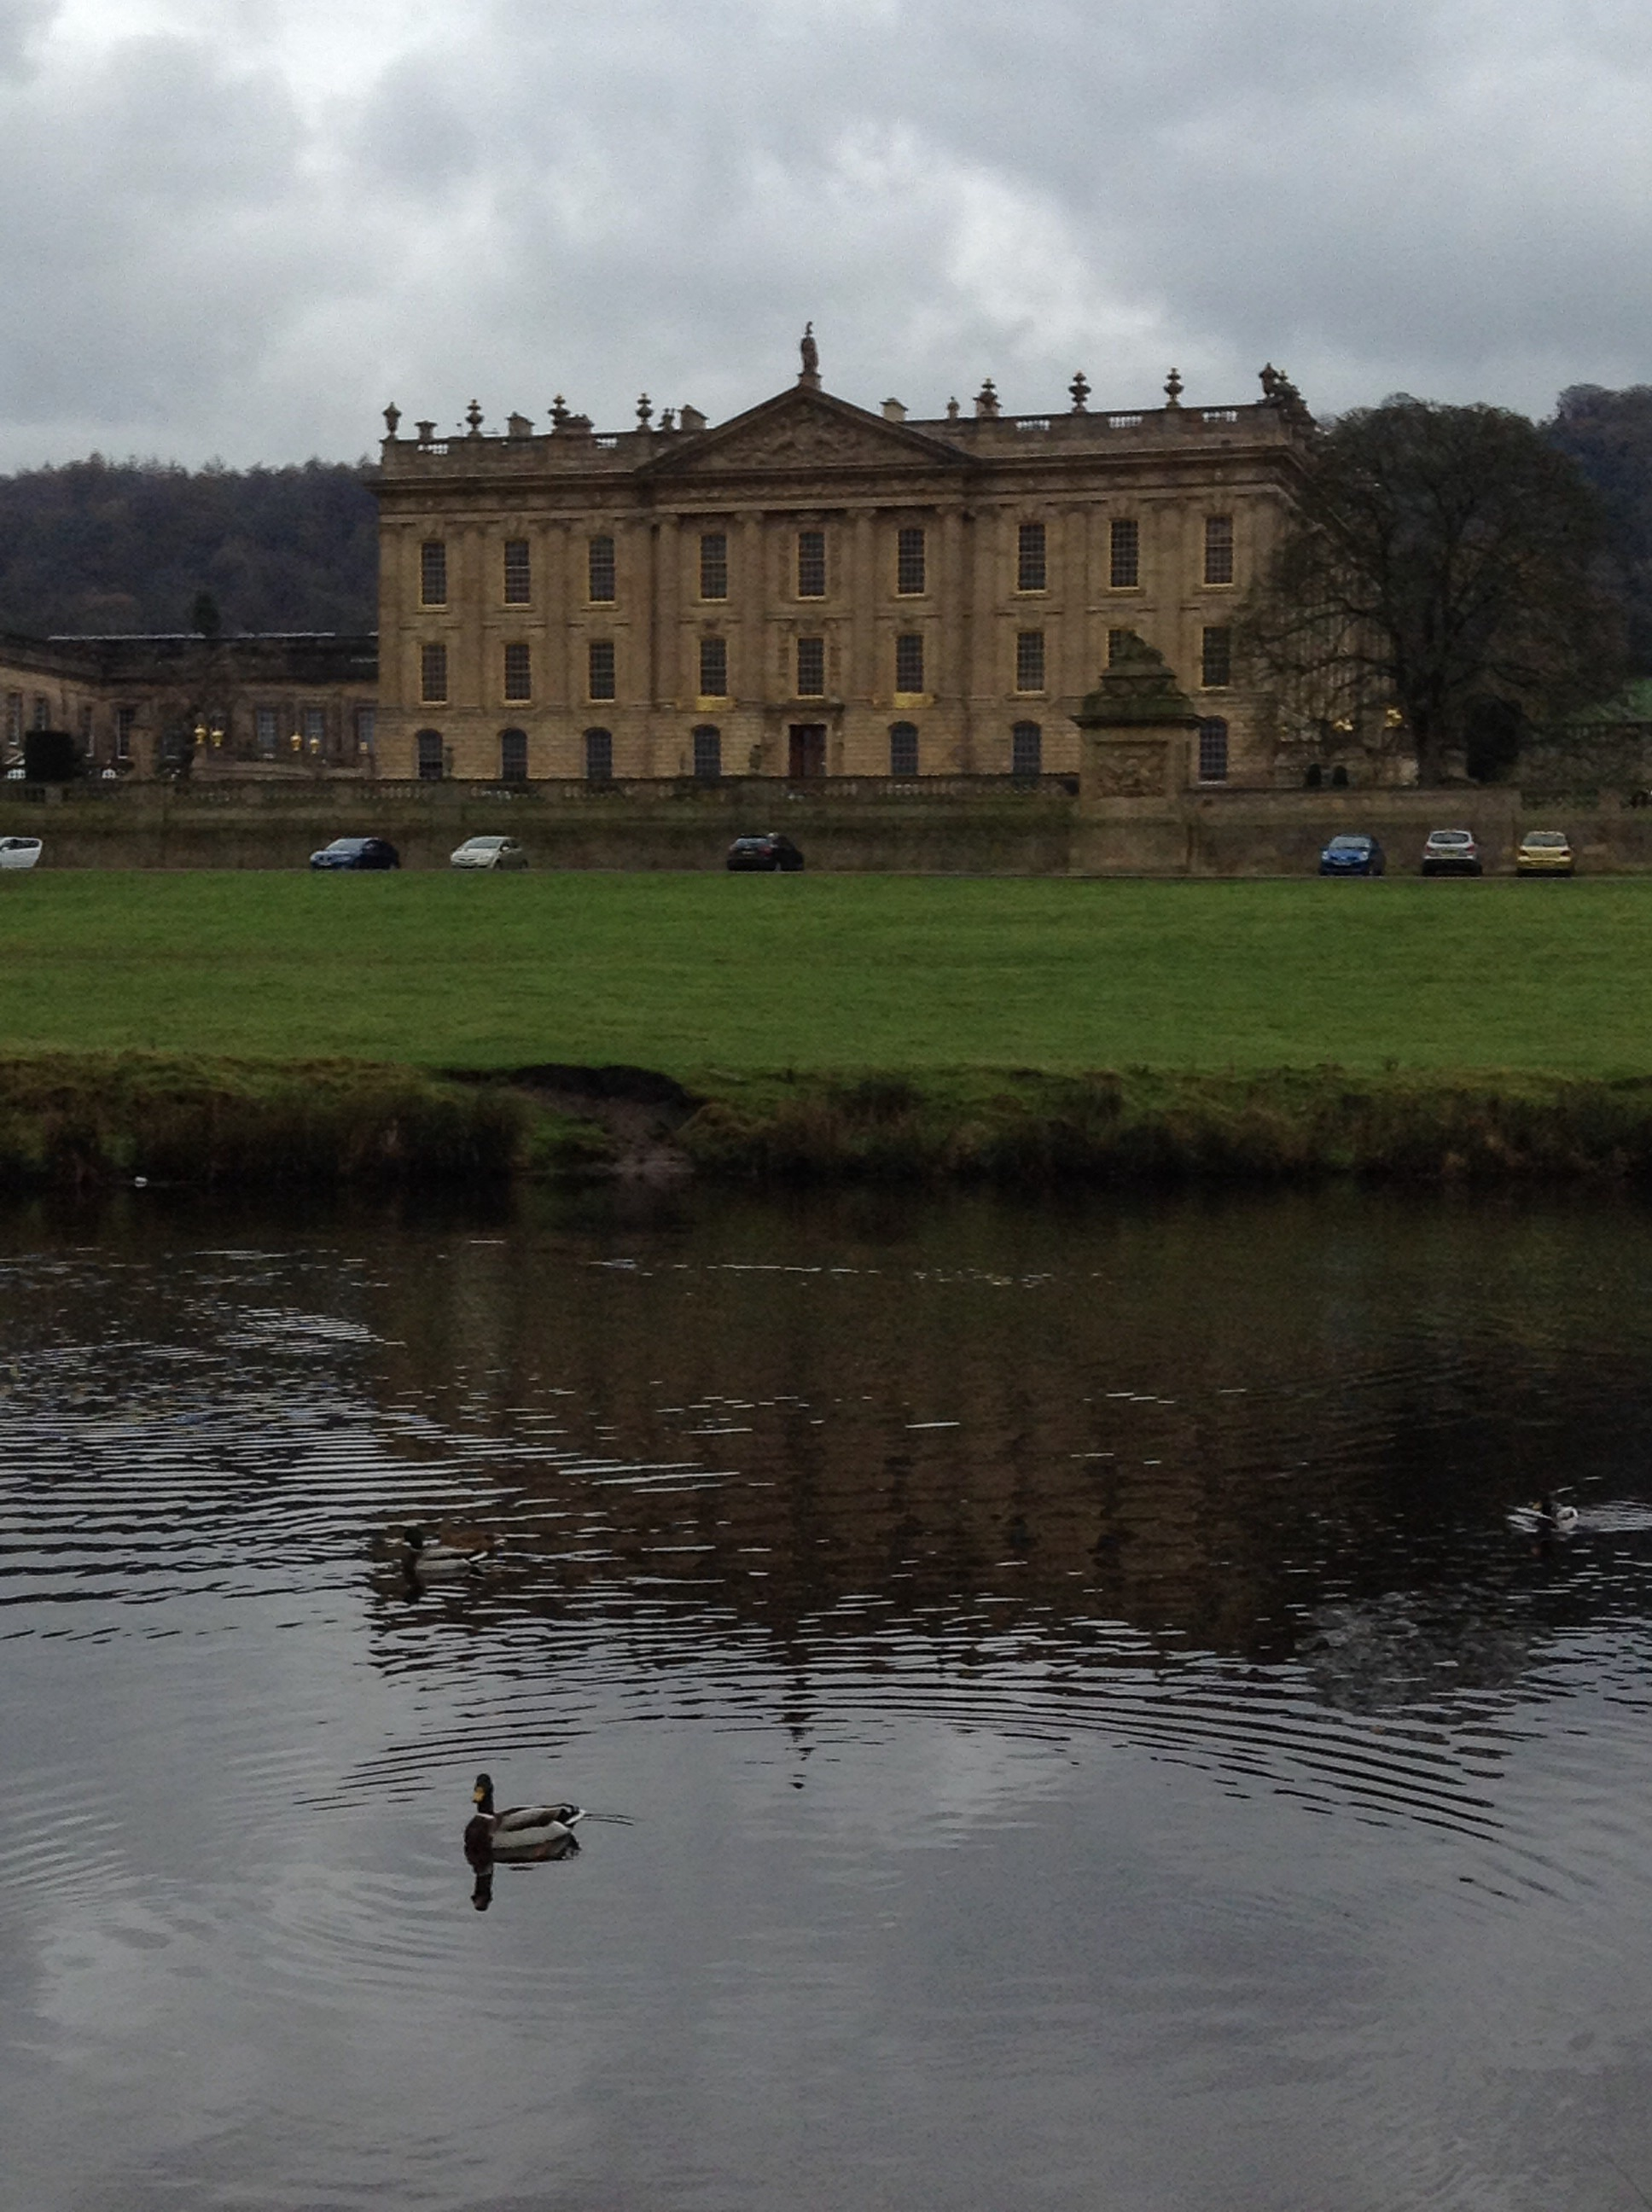 Chatsworth House from across the river